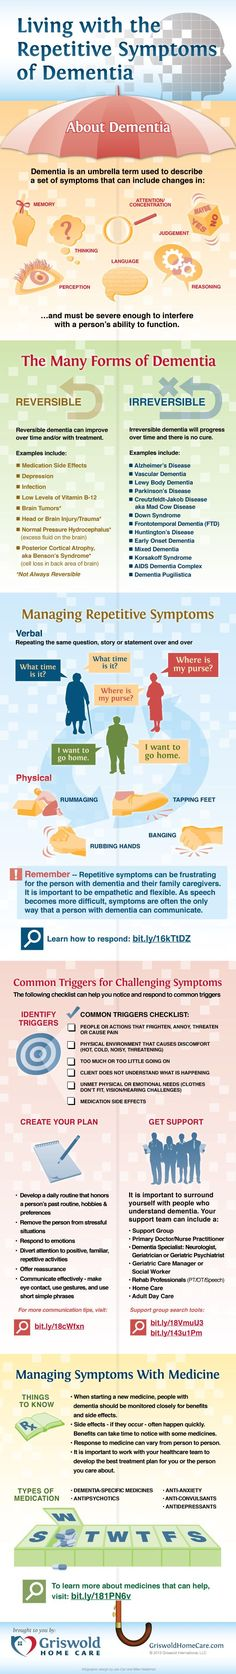 This infographic captures the nature of repetitive symptoms and their impact on the lives of people living with dementia. Repetitive symptoms are often misunderstood and create frustration and exhaustion for clients and their family/professional caregivers. It is important to remember that people with dementia cannot control their symptoms. #alzheimers #tgen #mindcrowd www.mindcrowd.org